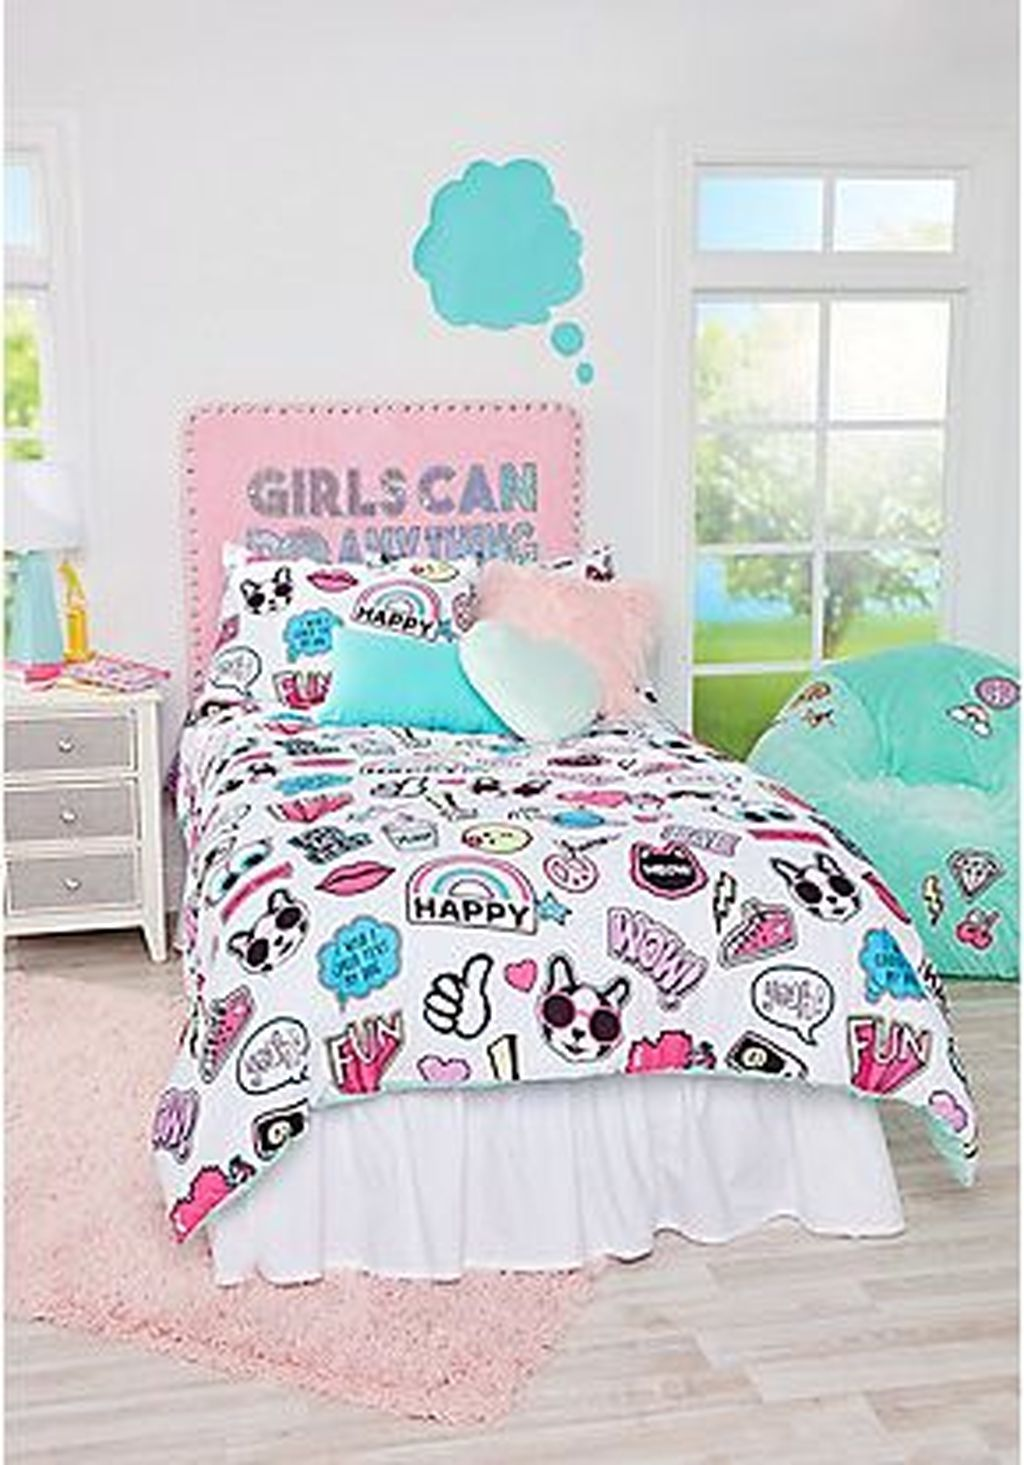 30 Cute Twin Beds Decoration Ideas For Twin Girls With Images Bed For Girls Room Girl Room Bed Decor